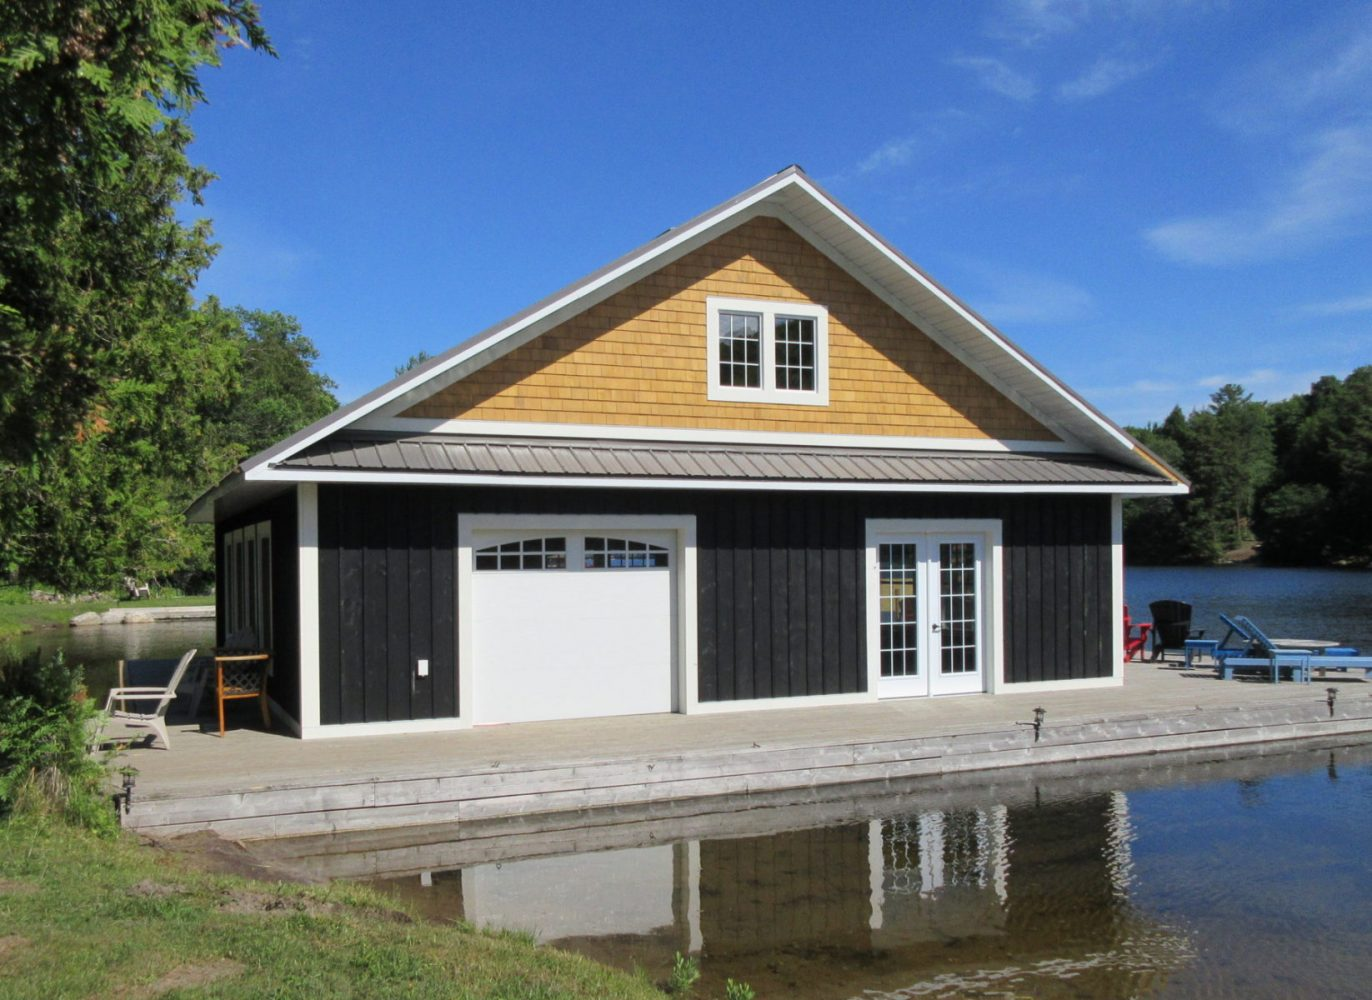 Boathouse built by PattyMac in Muskoka